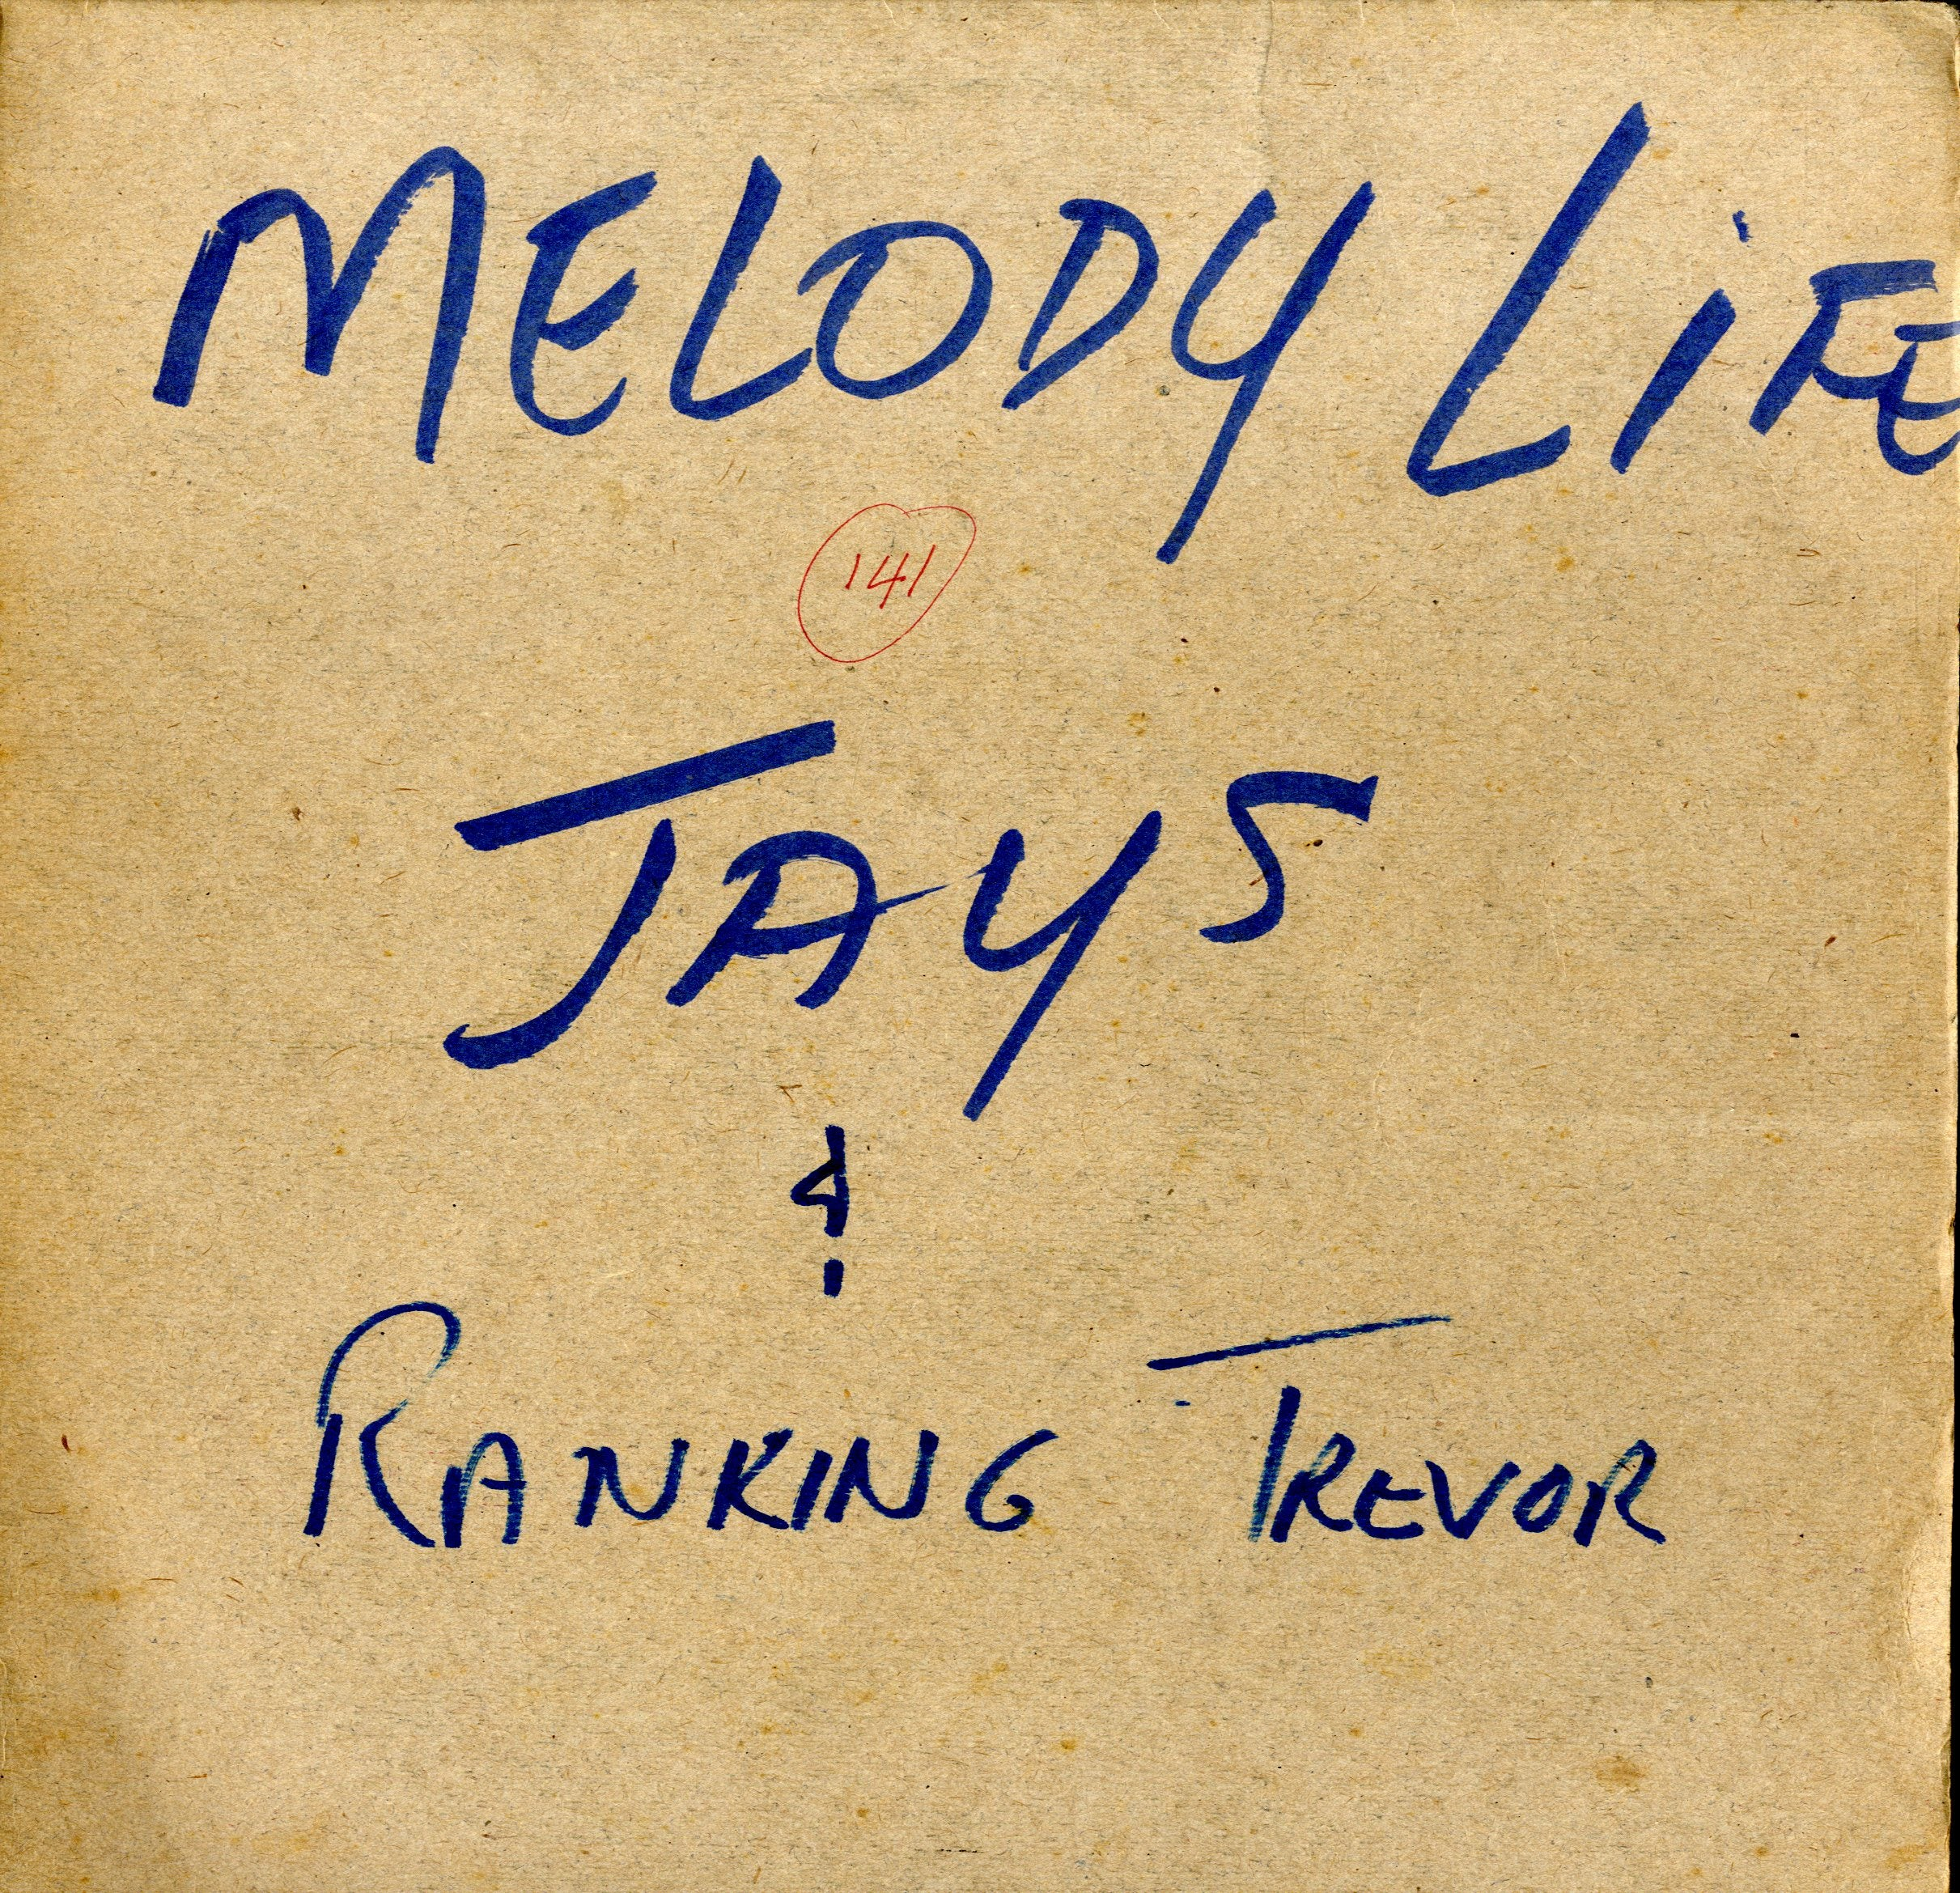 THE JAYS & RANKING TREVOR [Queen Majesty / Melody Life]